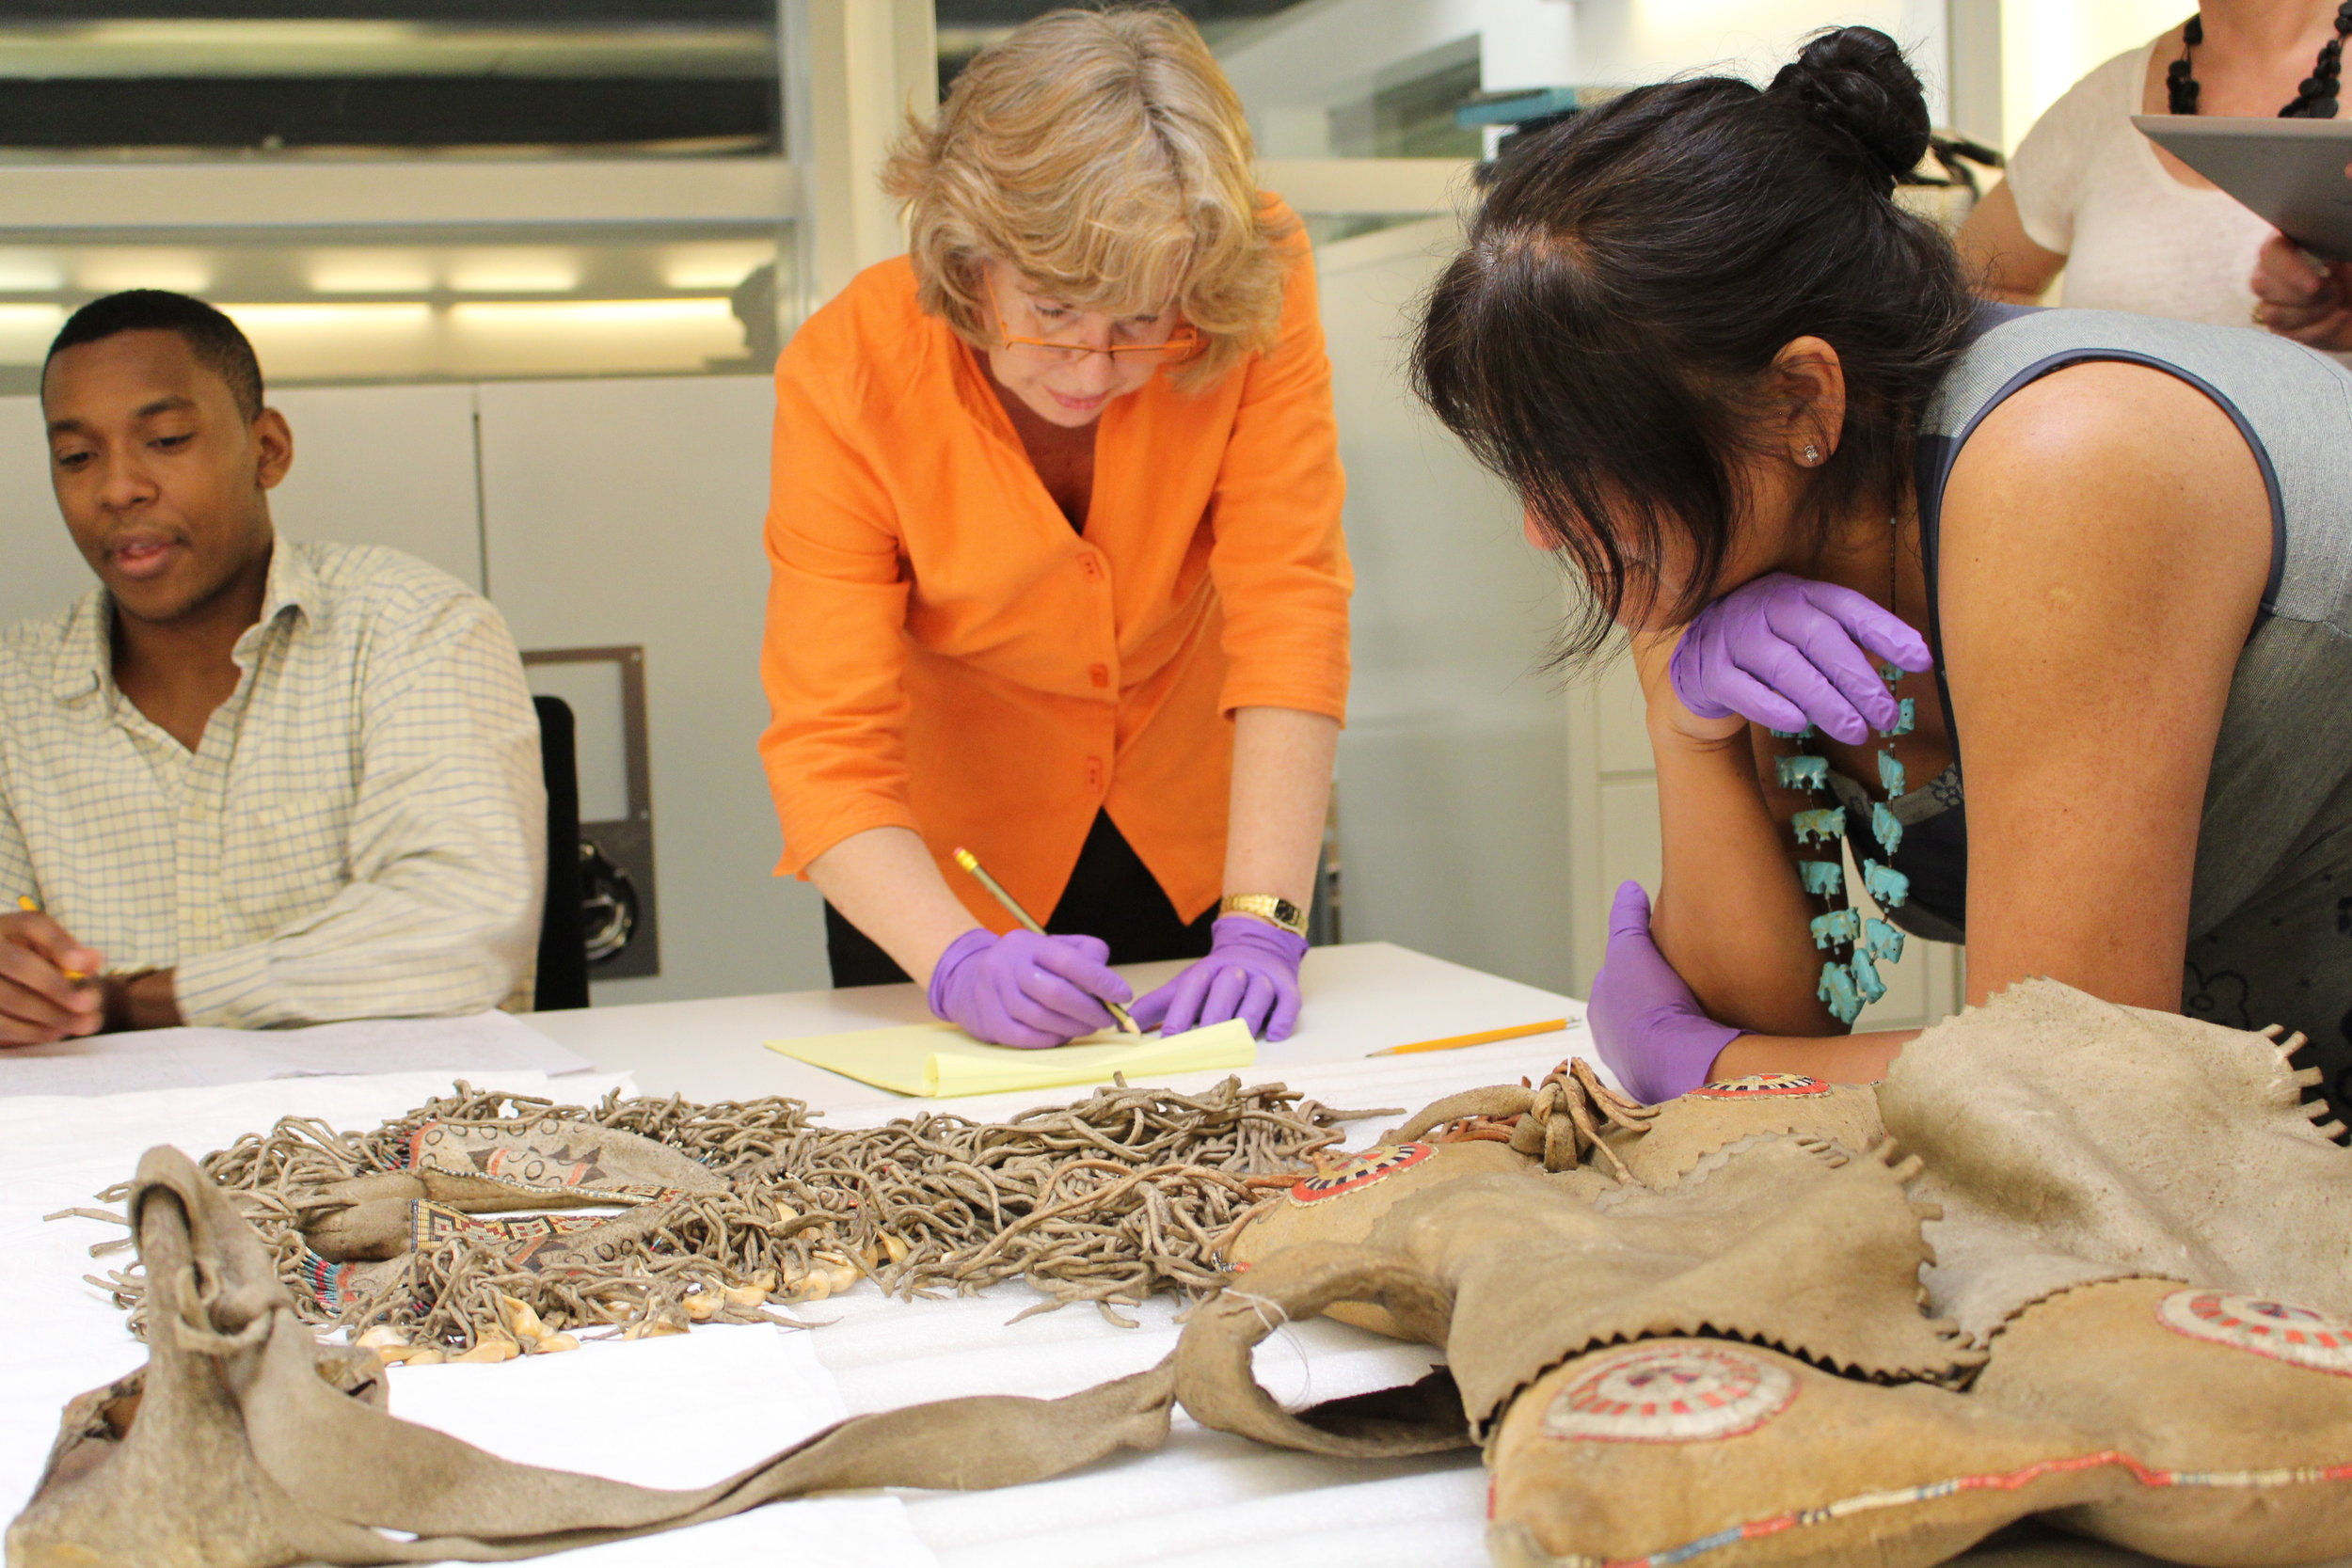 L to R: Luke Pepera (University of Oxford), Susan Berry and Judy Half study the saddle at the Pitt Rivers Museum.